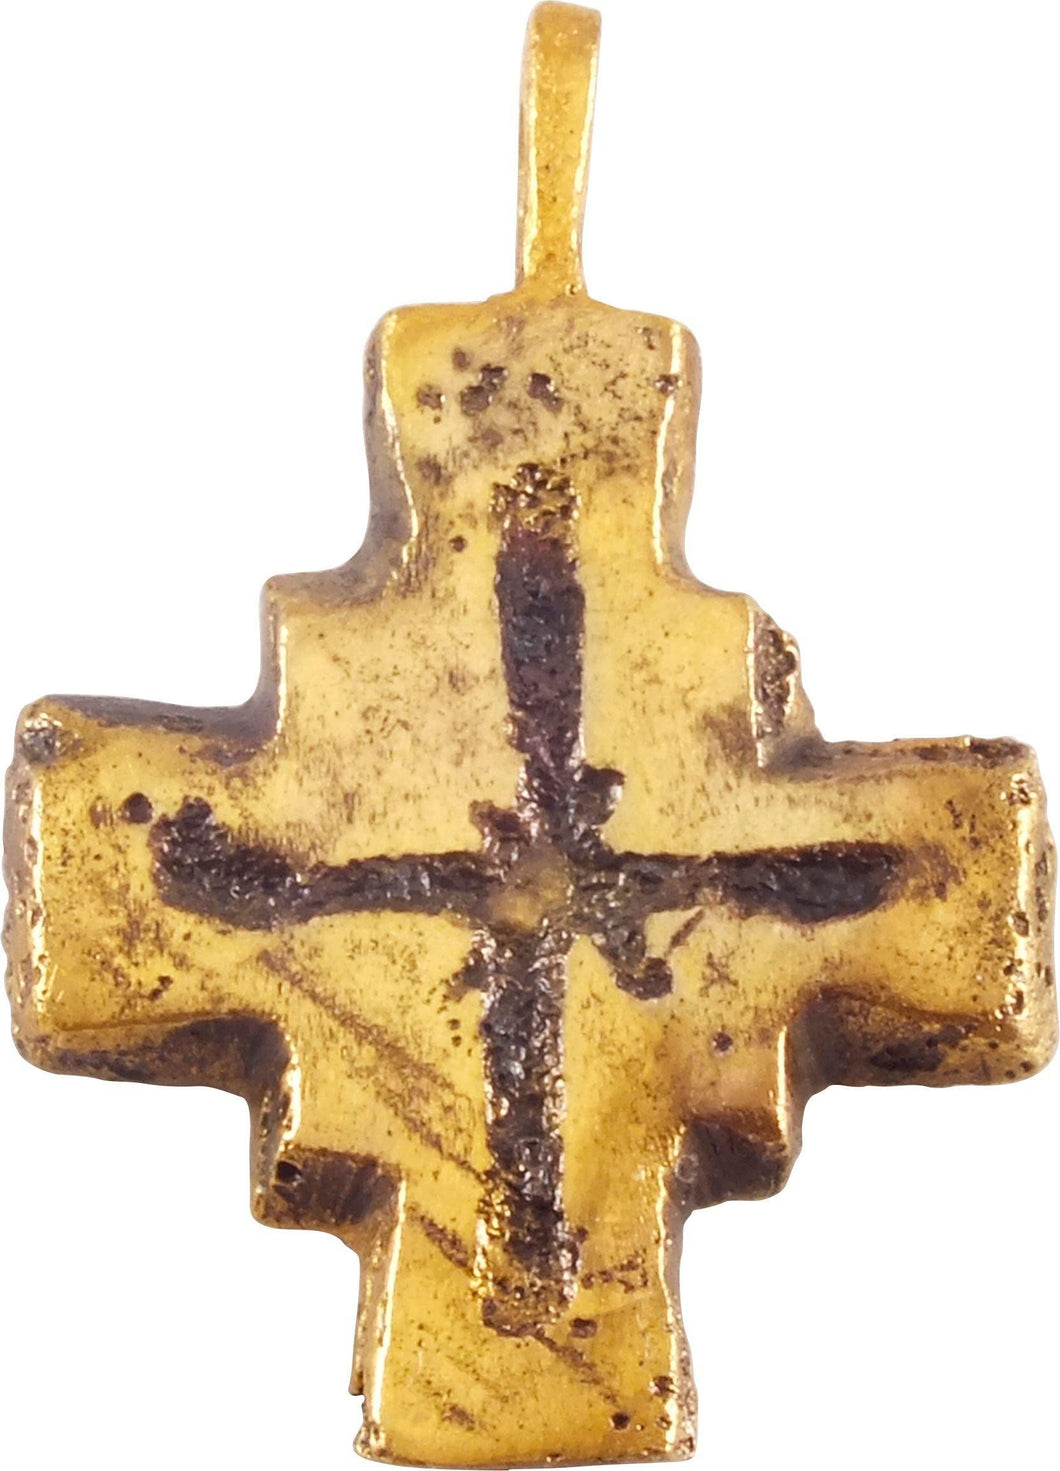 Medieval European Reliquary Cross 7Th-10Th Century - Product